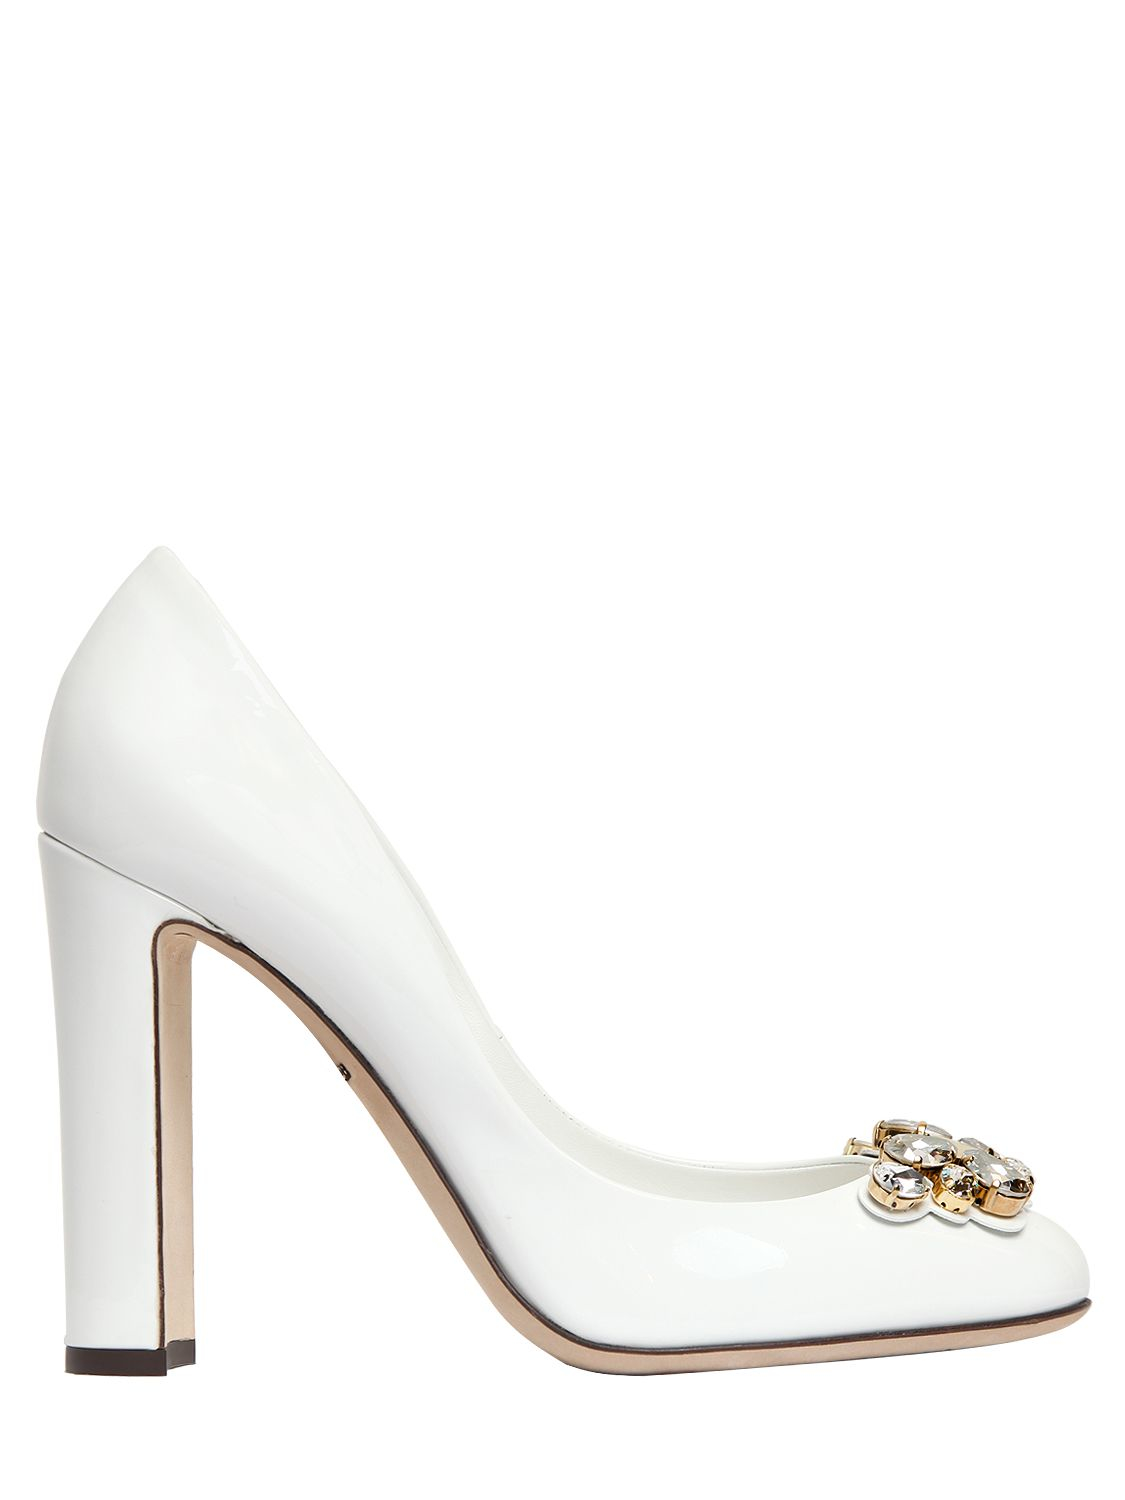 f69146a0f318 Dolce   Gabbana 105mm Jeweled Patent Leather Pumps in White - Lyst